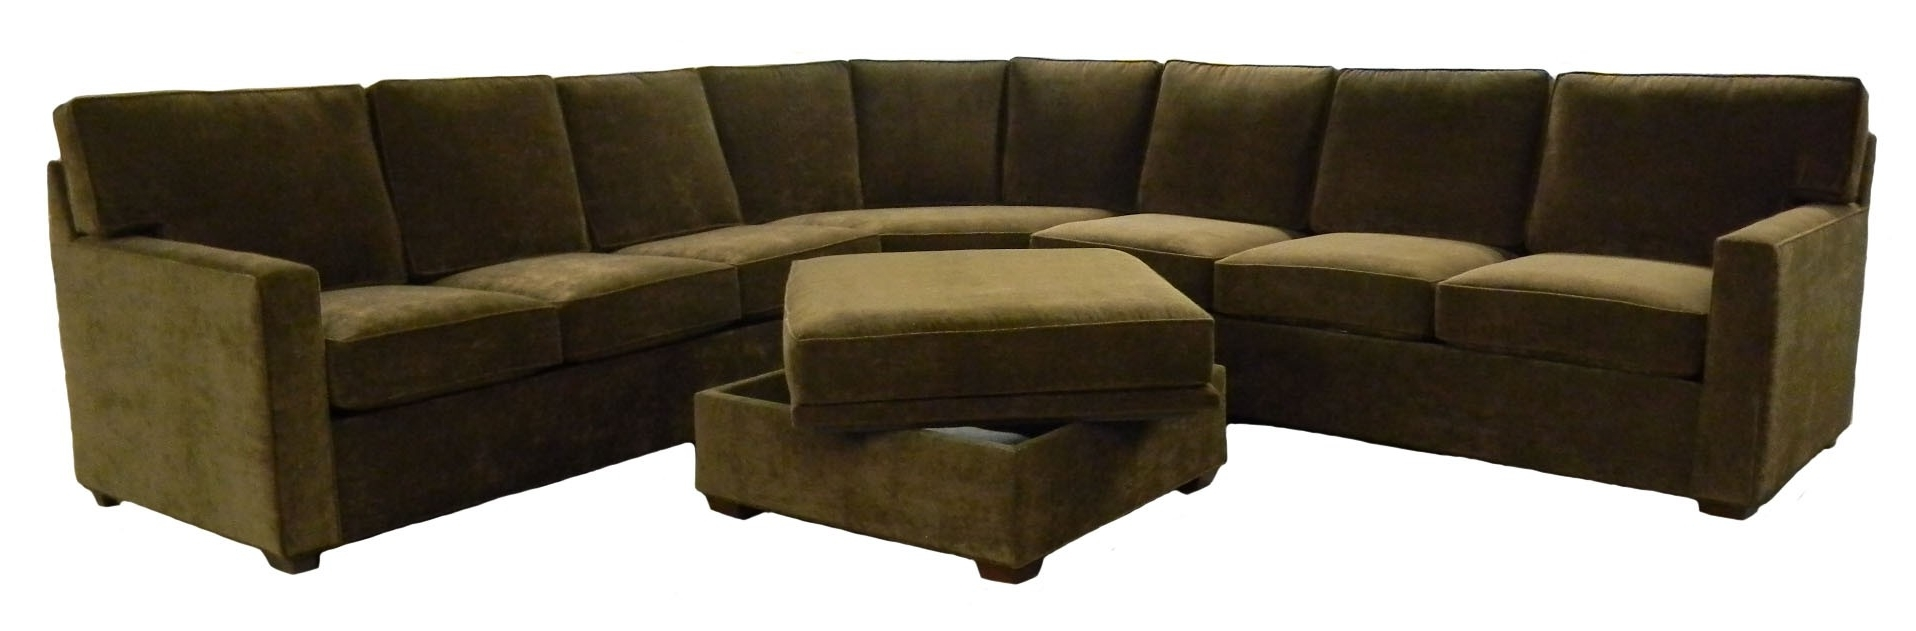 Customizable Sectional Sofas Pertaining To Well Liked Lovely Customizable Sectional Sofa – Buildsimplehome (View 4 of 20)